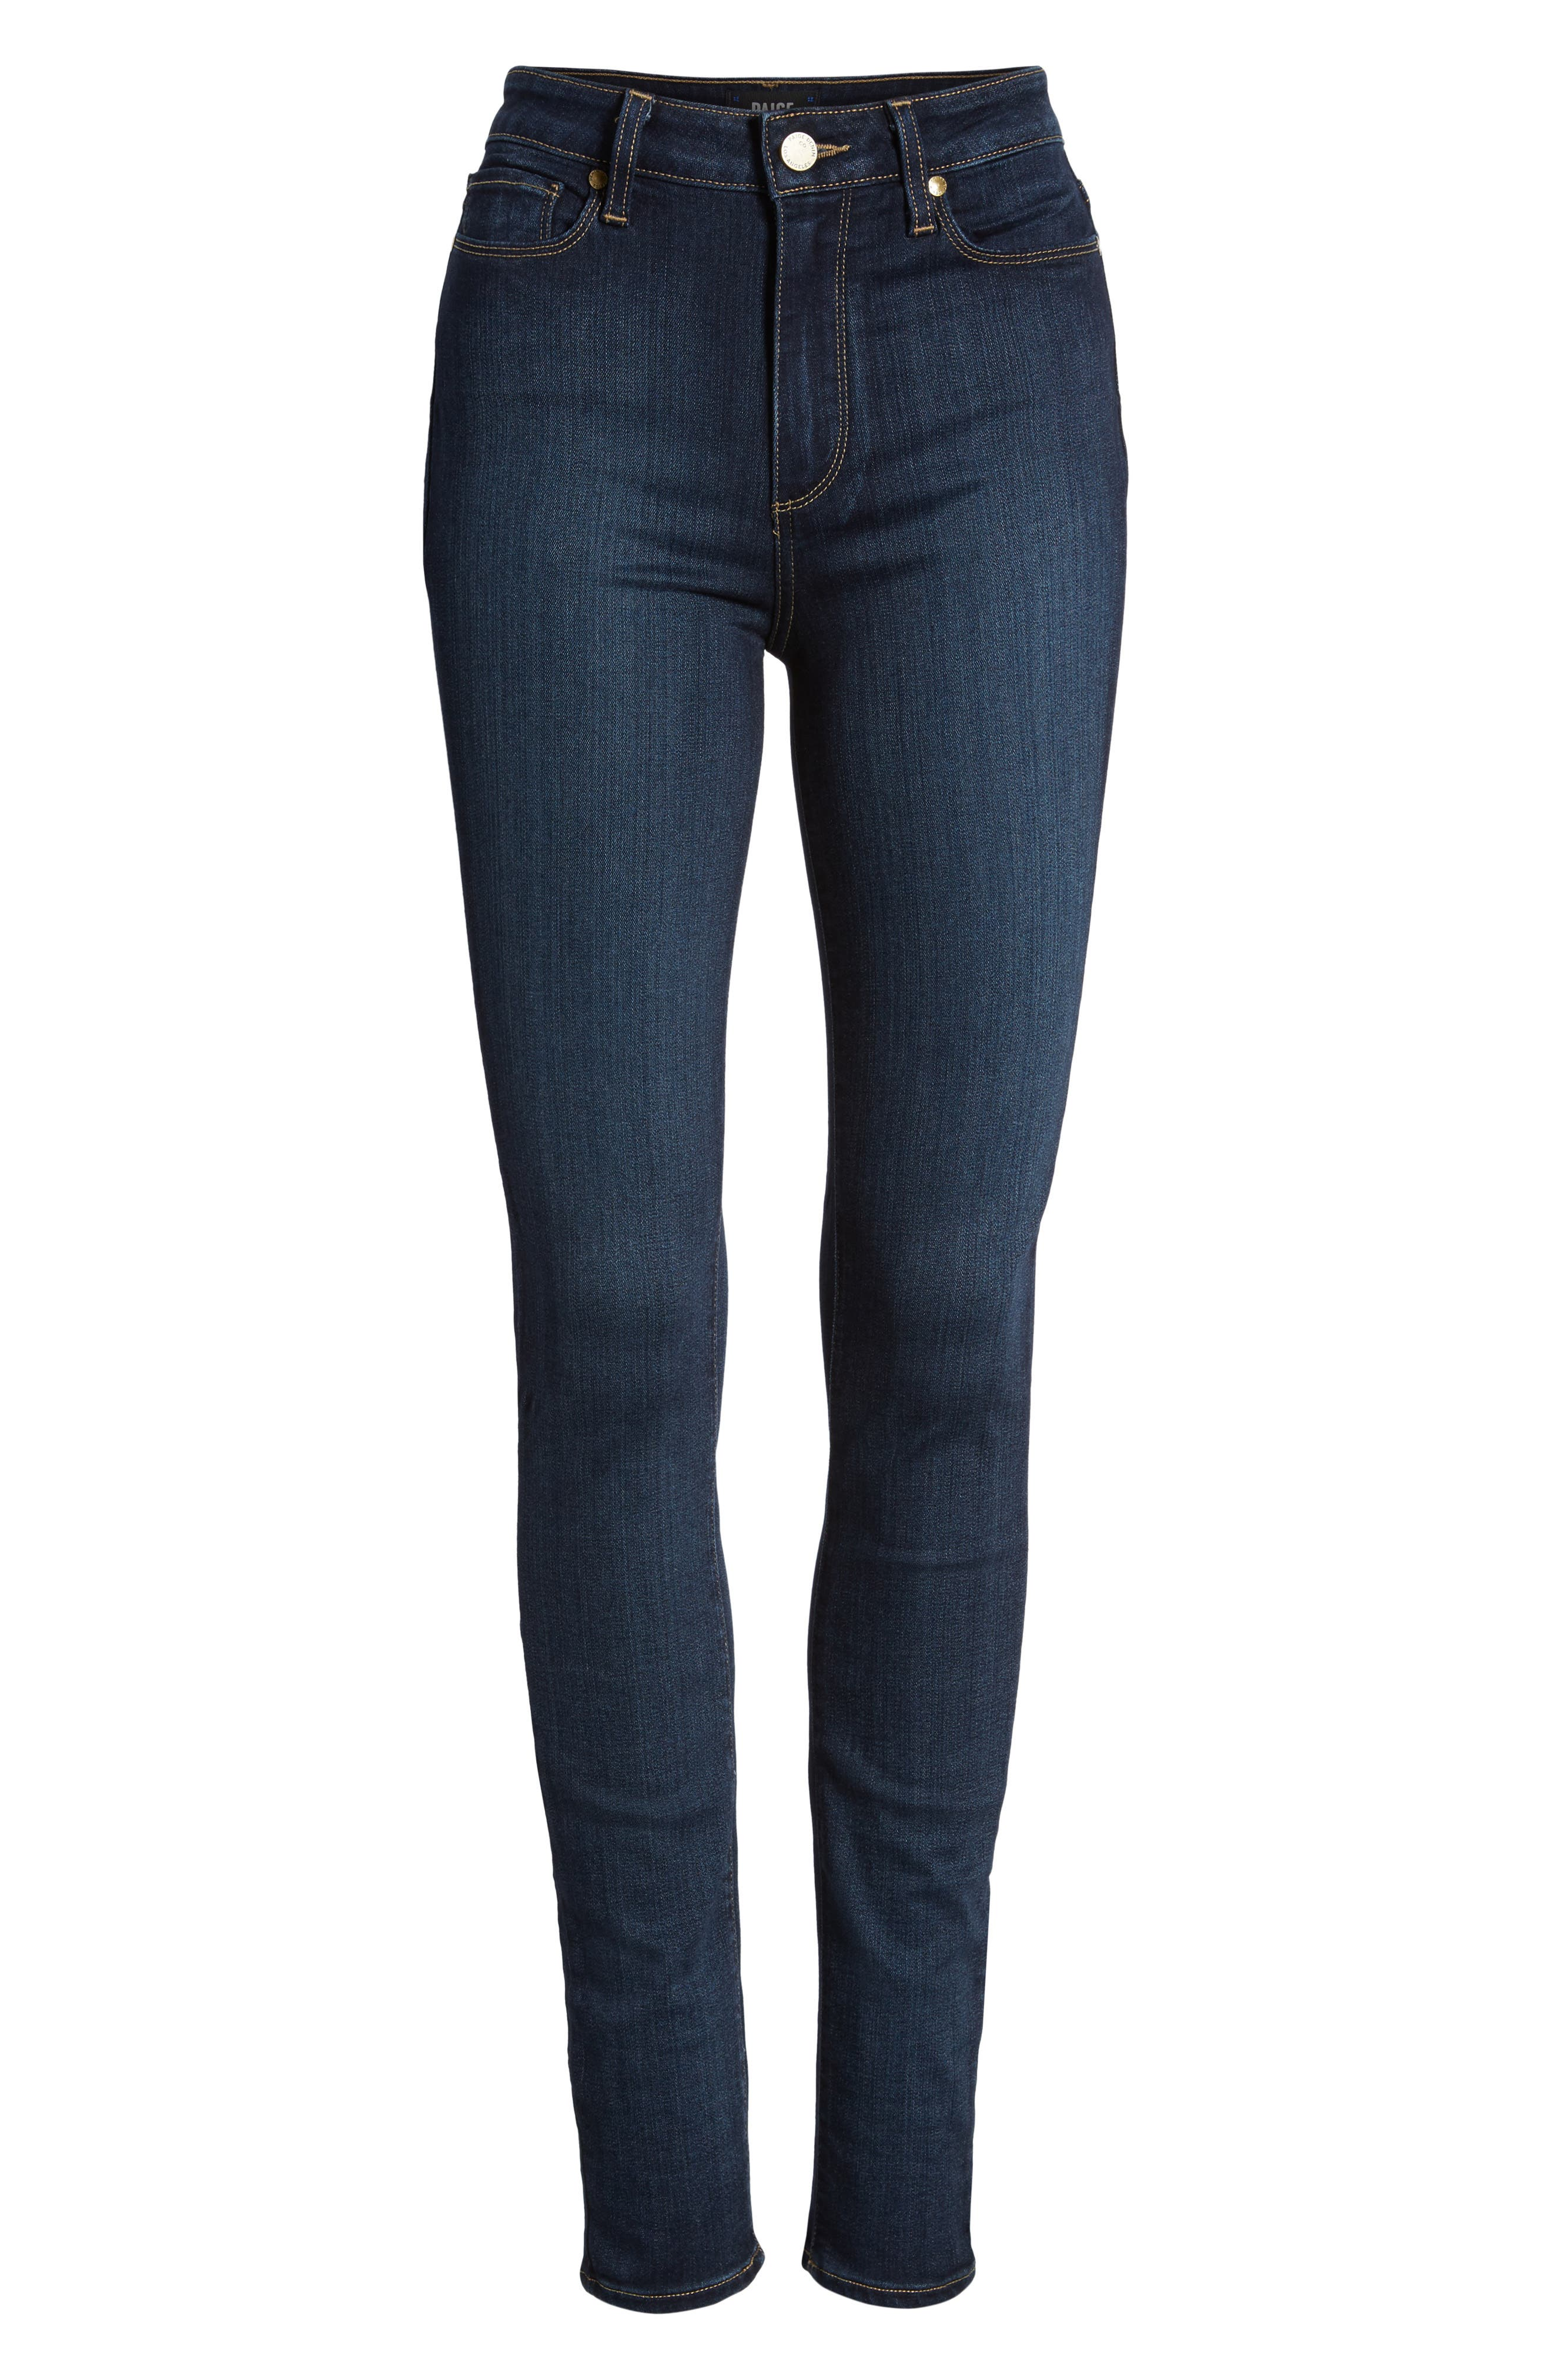 PAIGE,                             Transcend - Margot High Waist Ultra Skinny Jeans,                             Alternate thumbnail 3, color,                             LA RUE NO WHISKERS